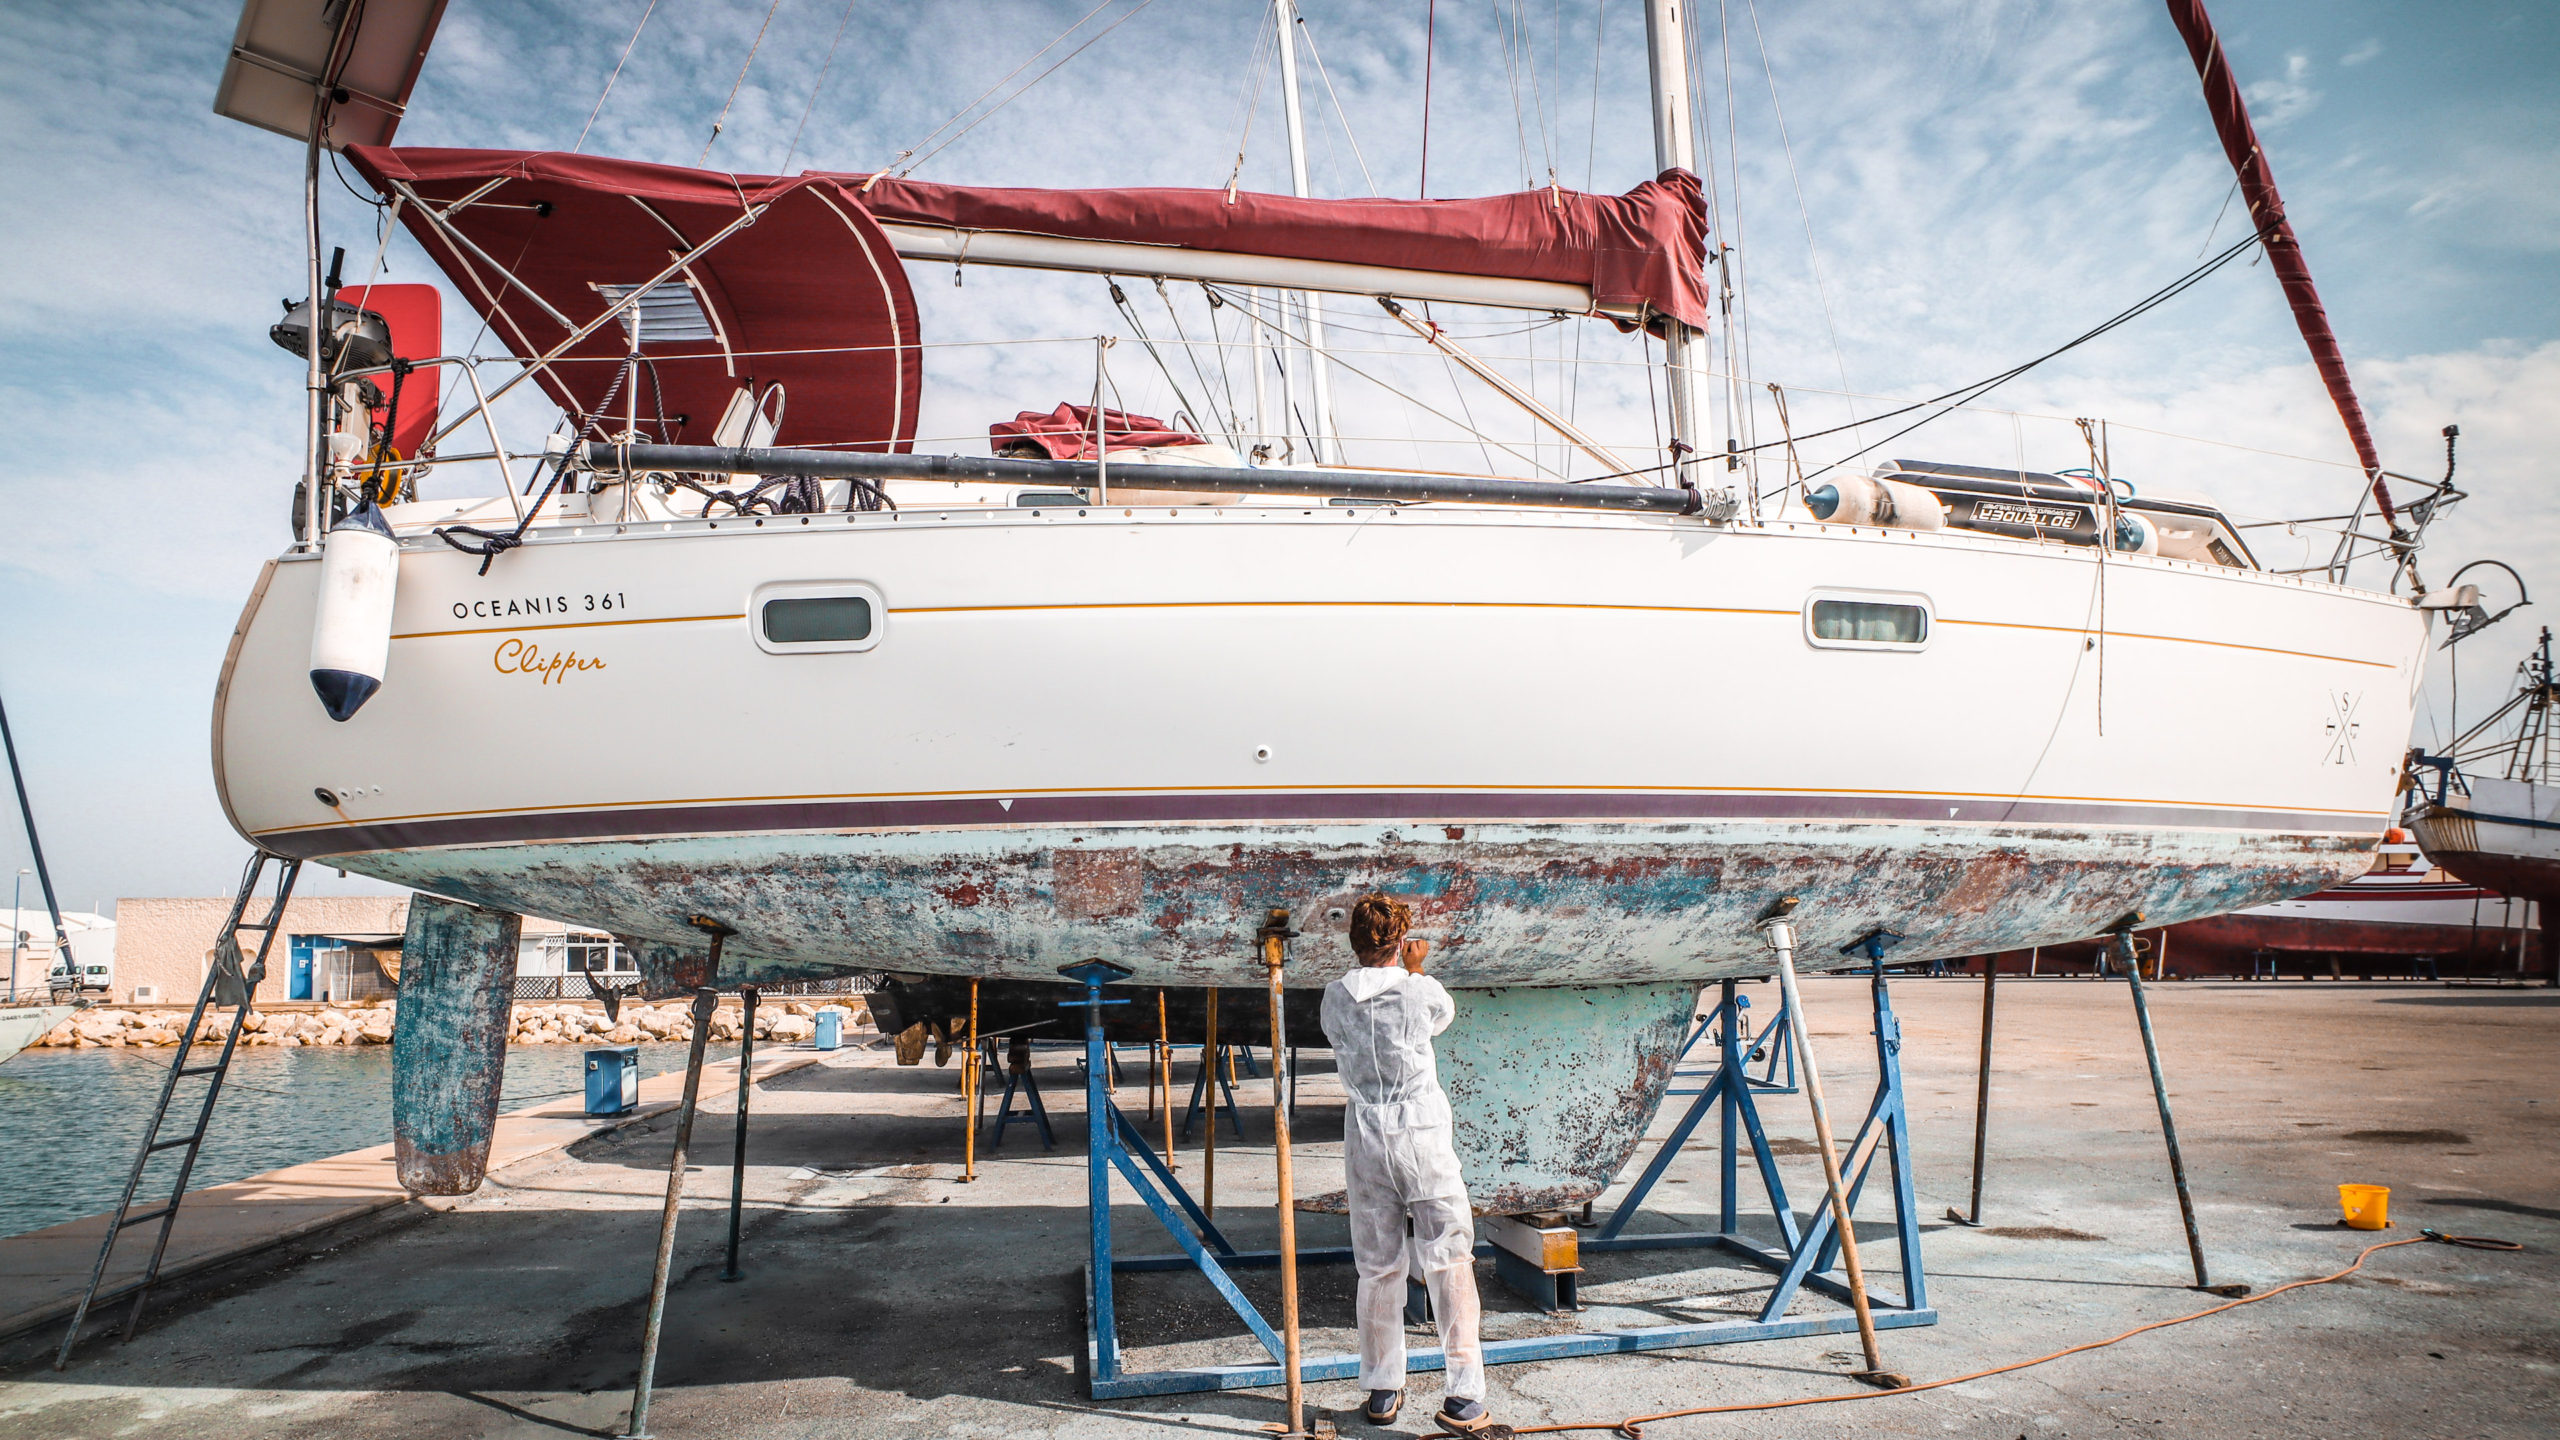 Working on the boat in Spain last year